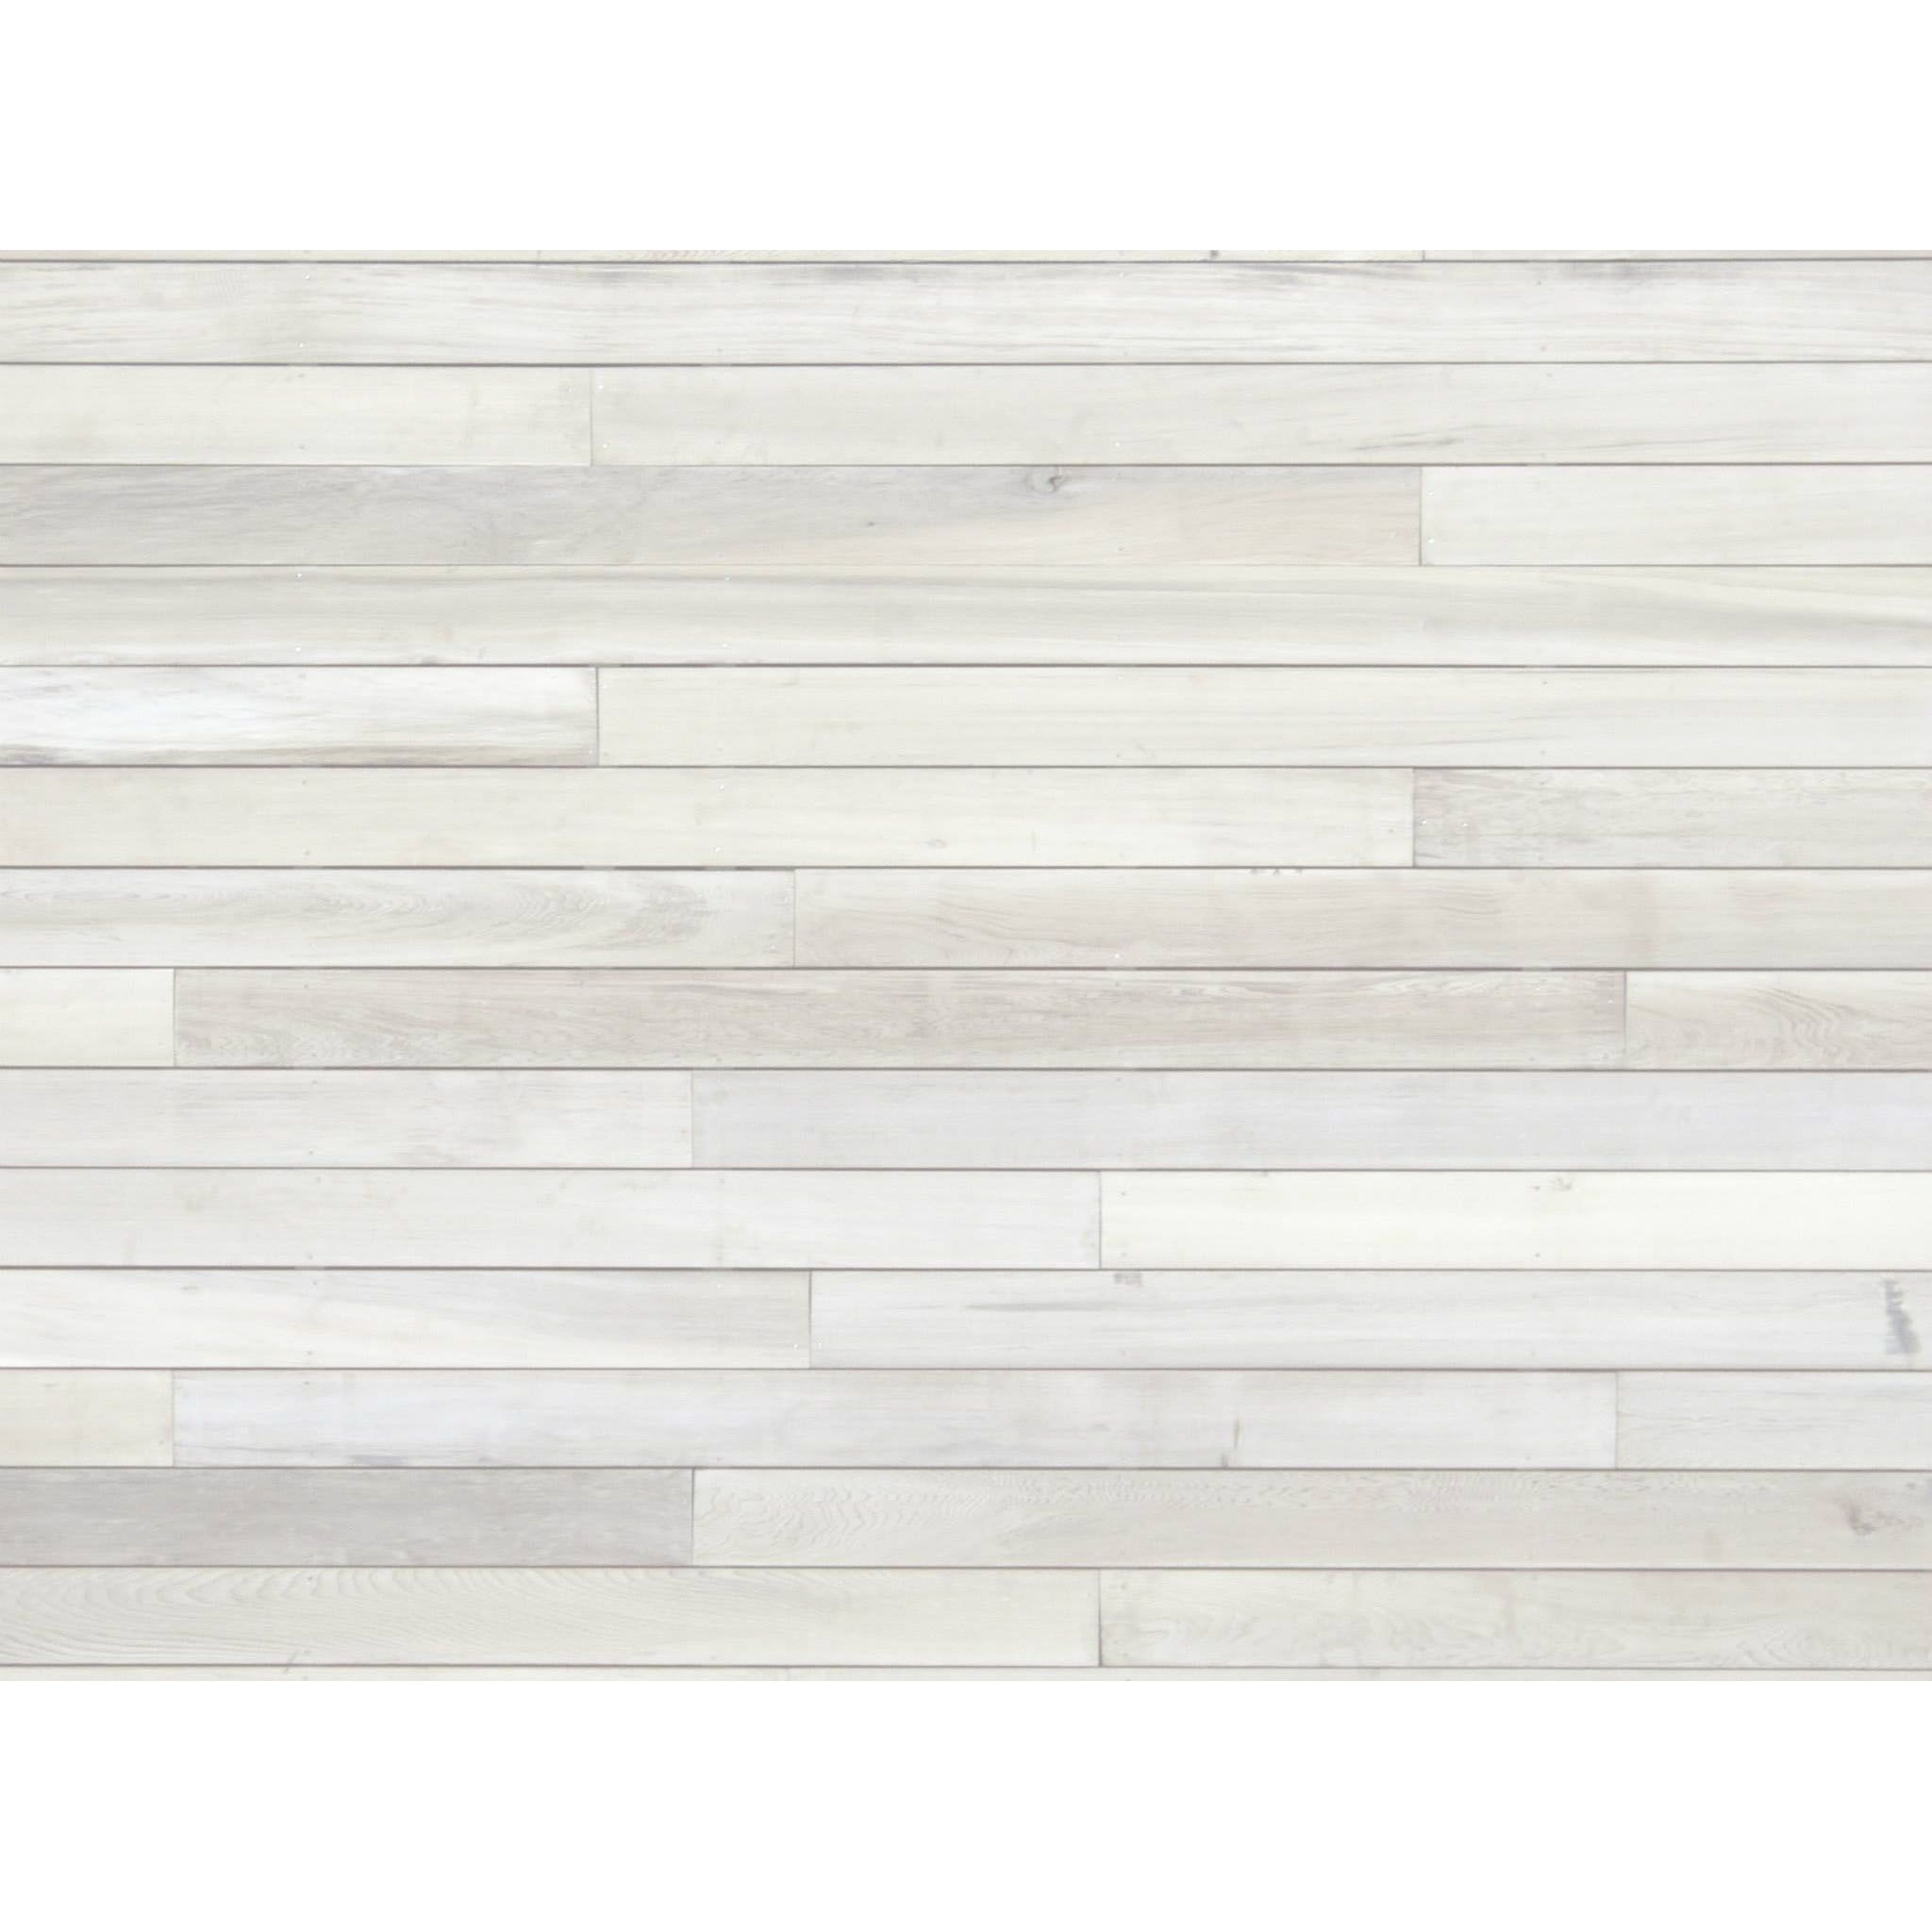 White Wooden Floor Texture Pine Floor Limewash Materials